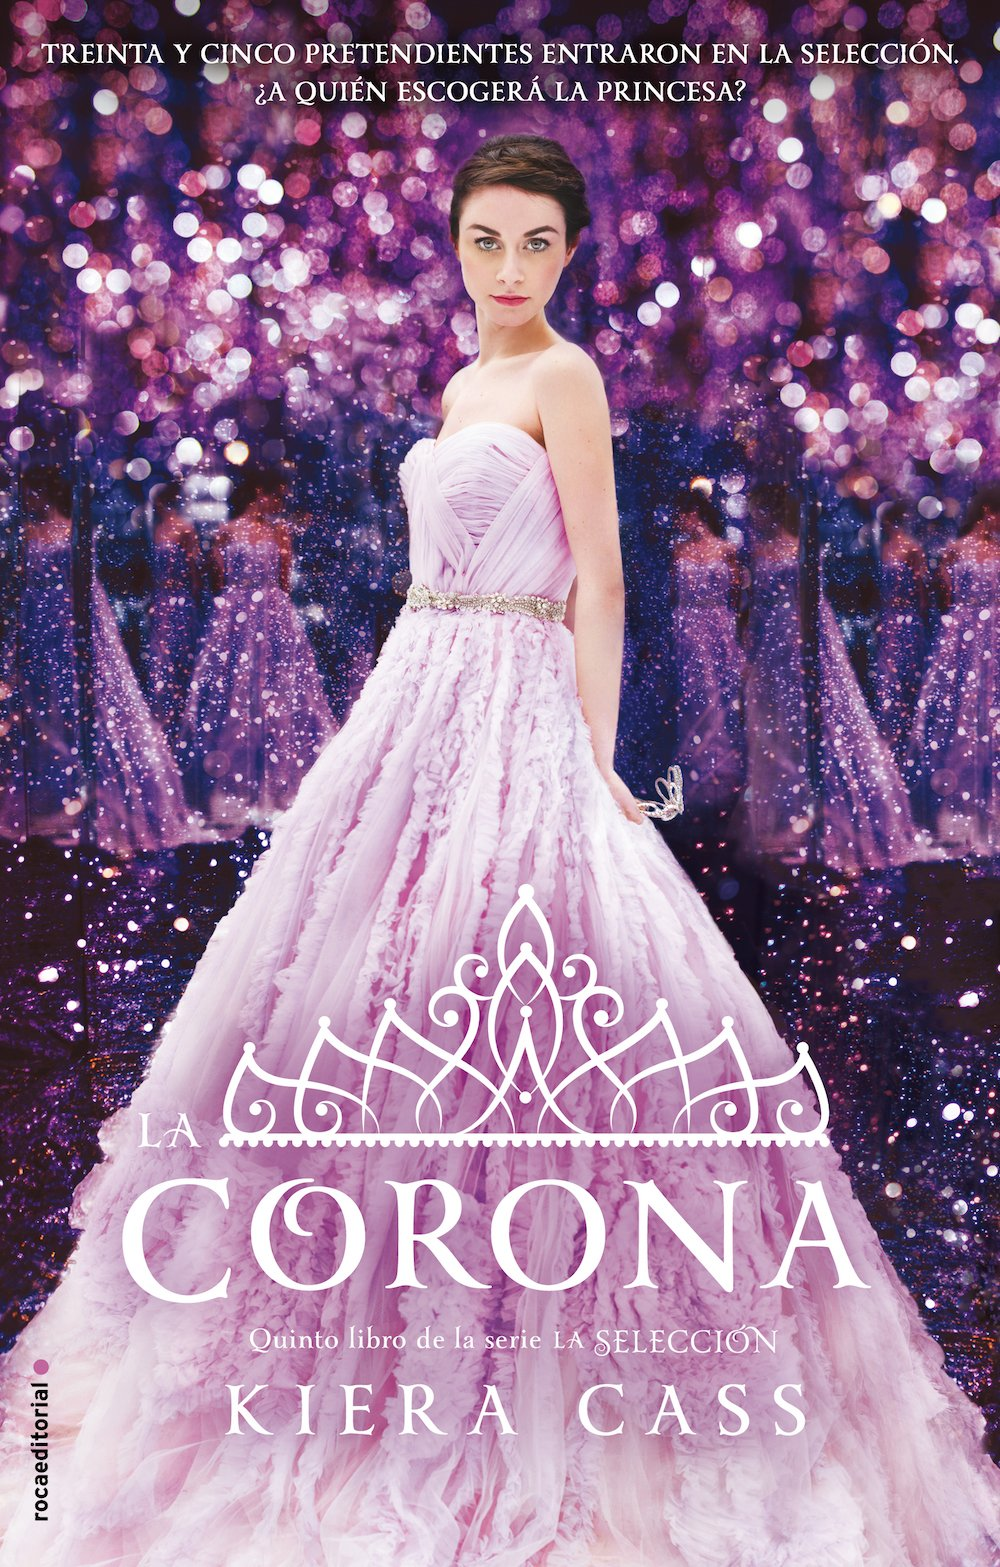 La corona (La Seleccion) (Spanish Edition): Kiera Cass: 9788416498147: Amazon.com: Books